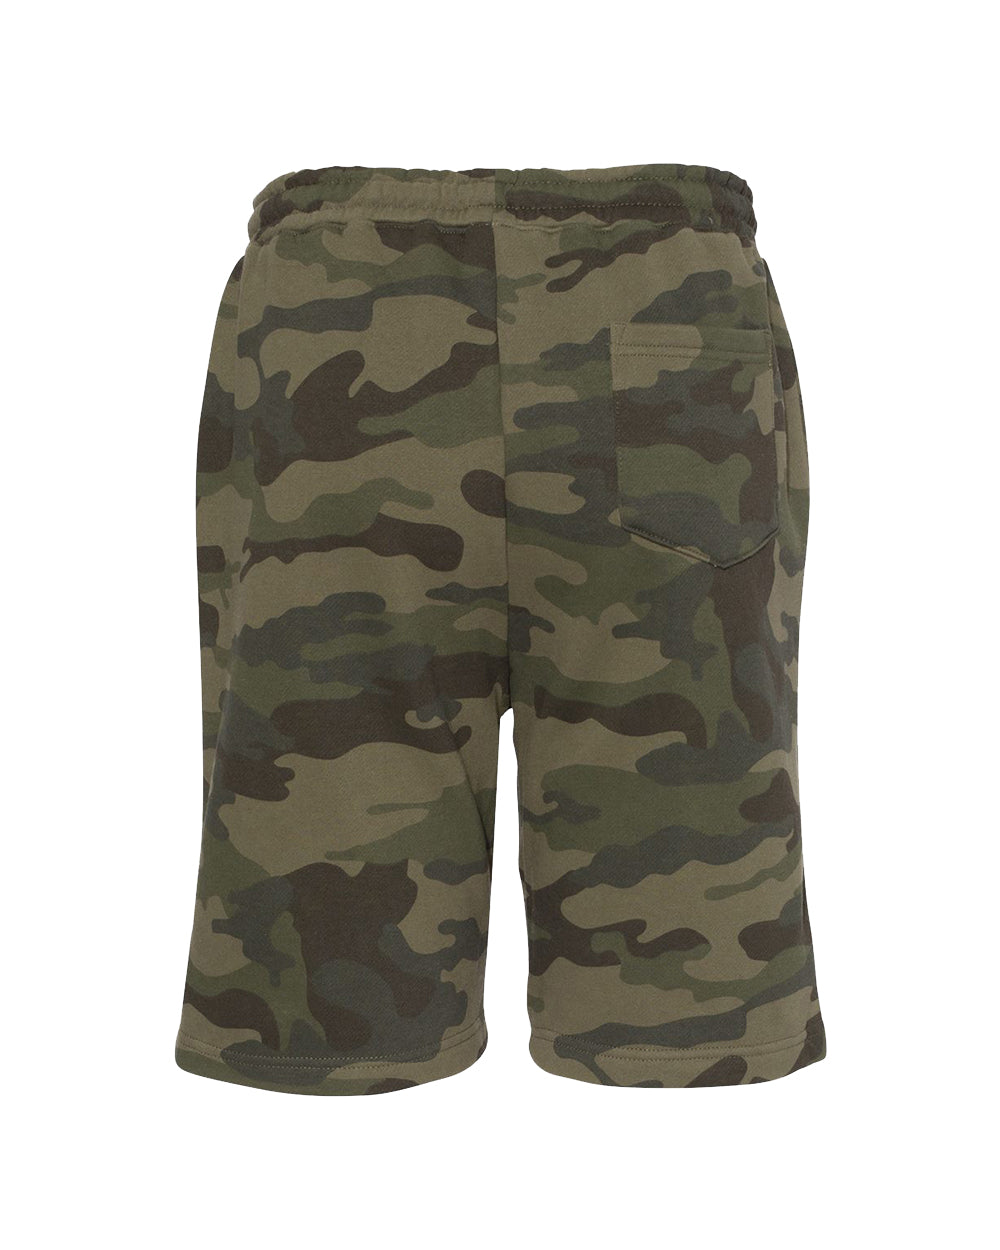 Roam Midweight Fleece Shorts - Forest Camo - Back